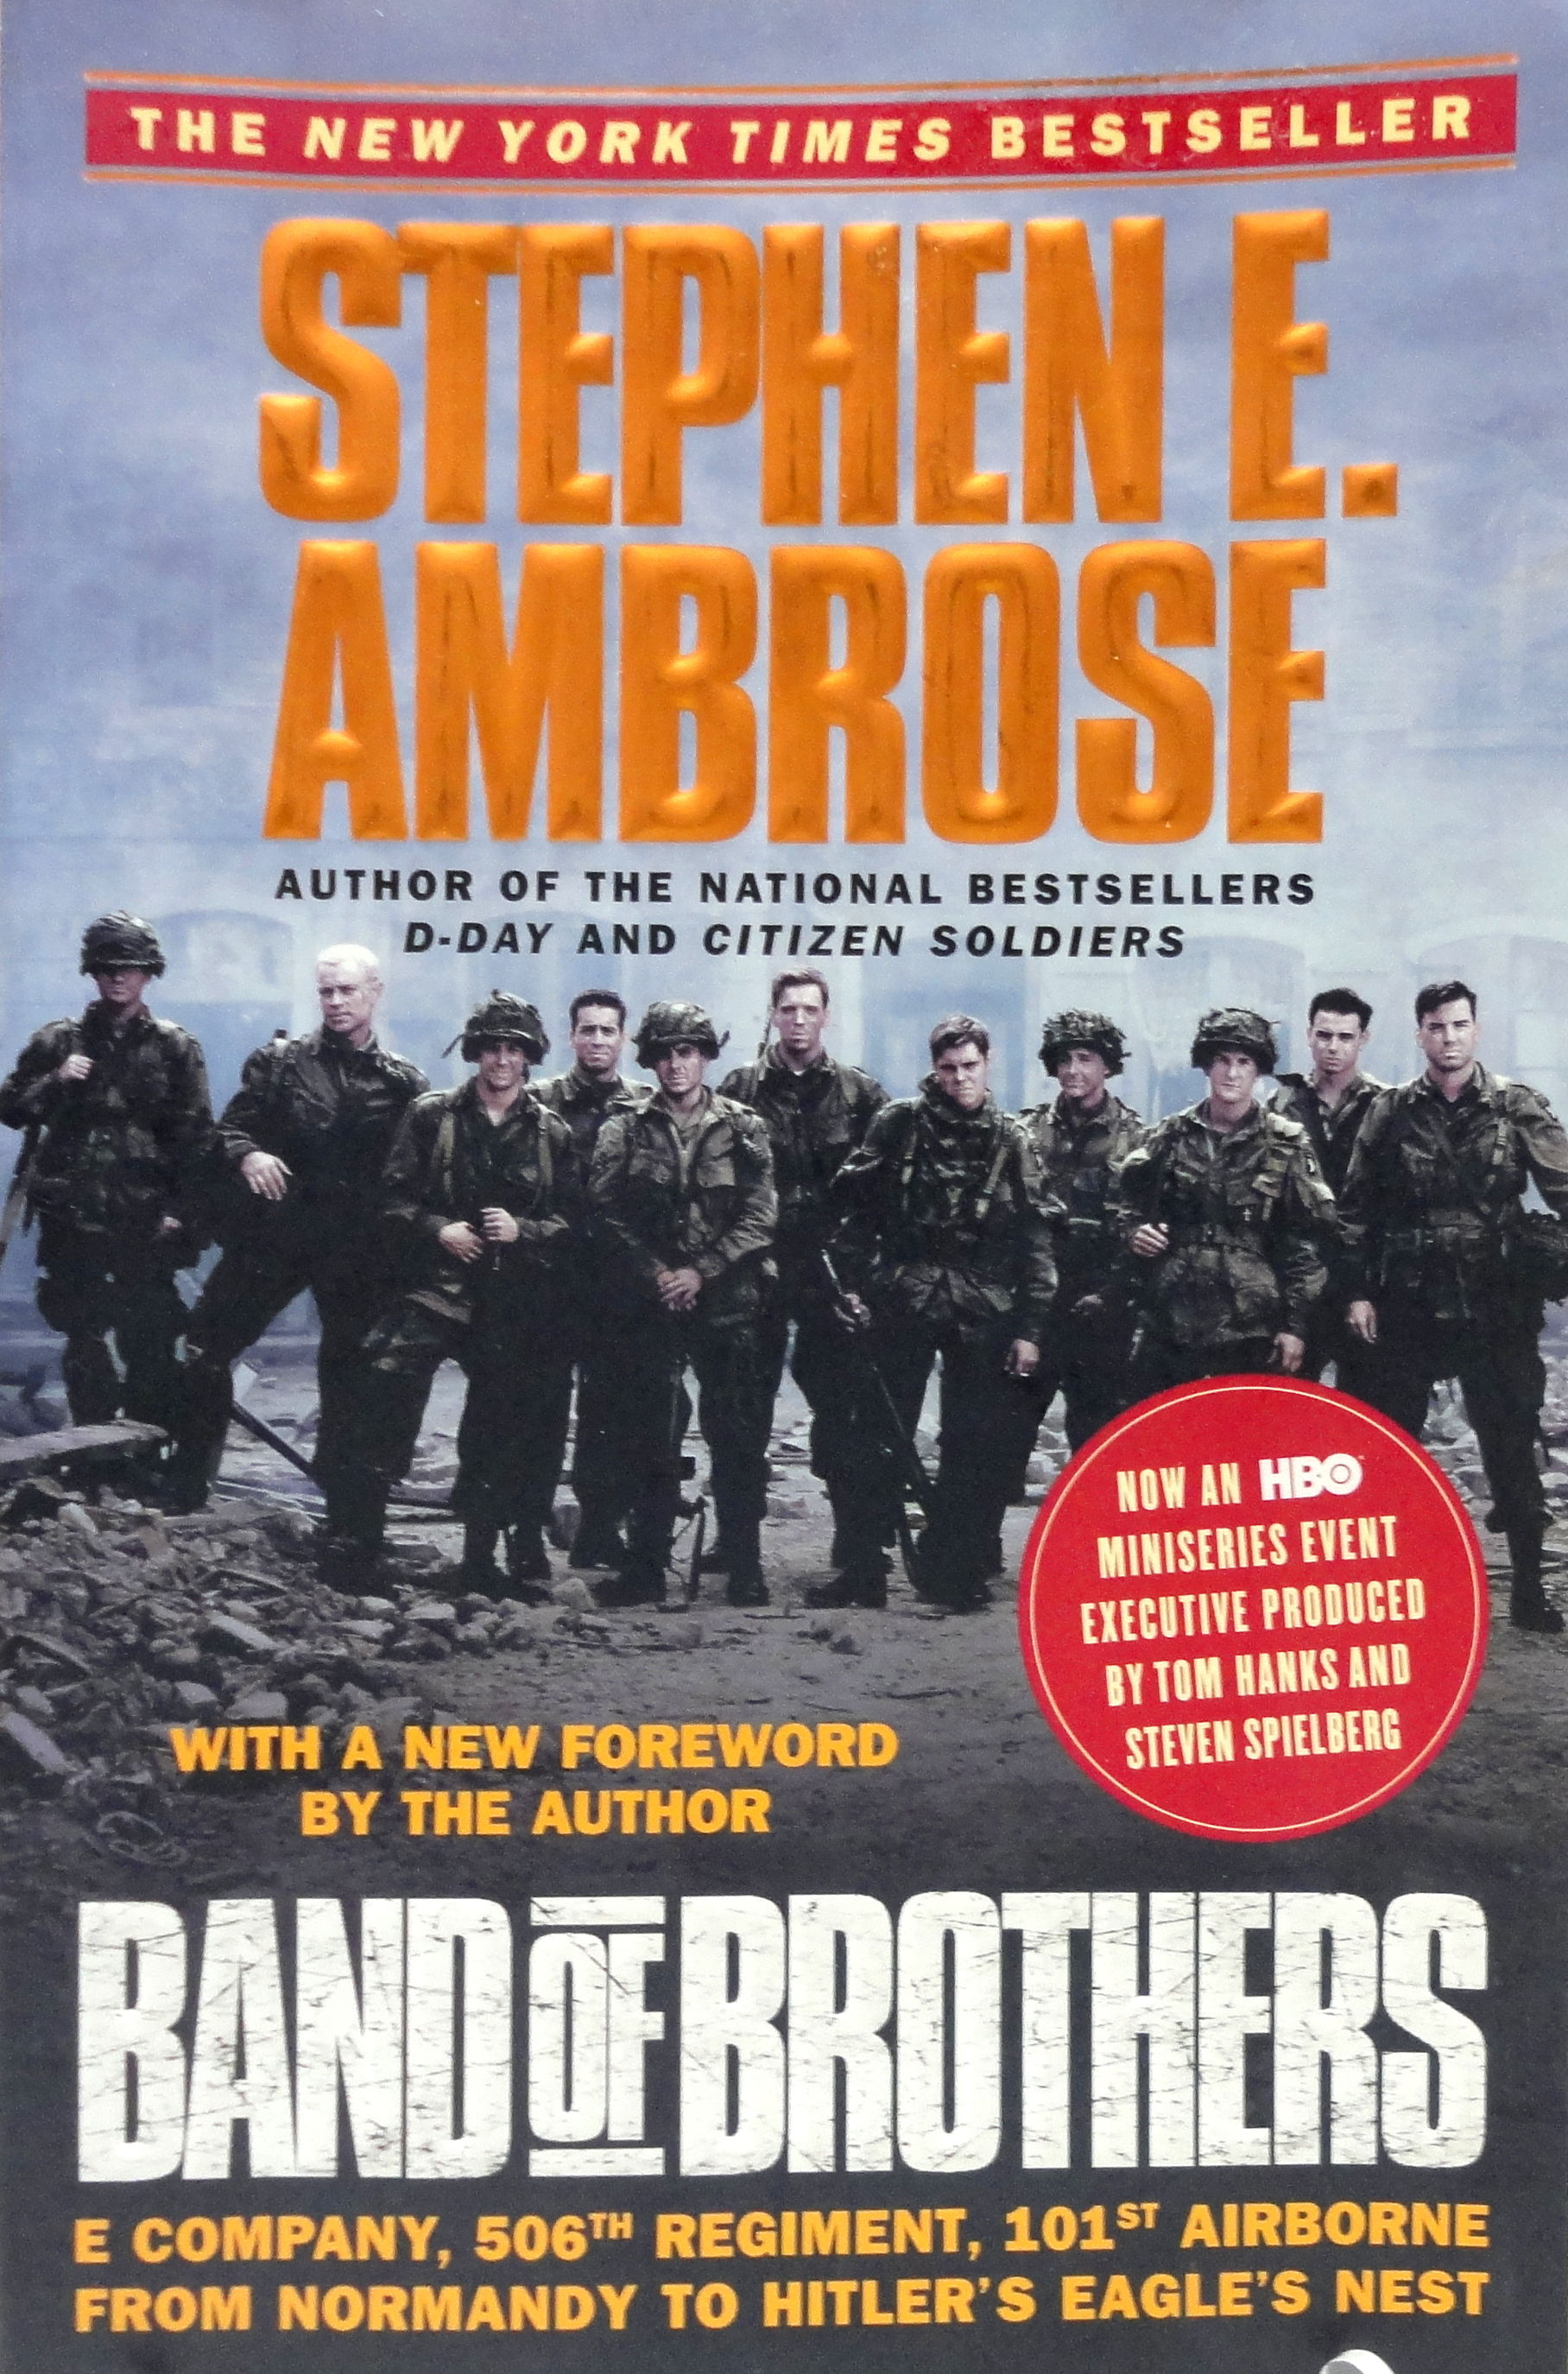 Band of Brothers: E Company, 506th Regiment, 101st Airborne from Normandy  to Hitler's Eagle's Nest by STEPHEN E AMBROSE - Paperback - 2001 - from The  ...